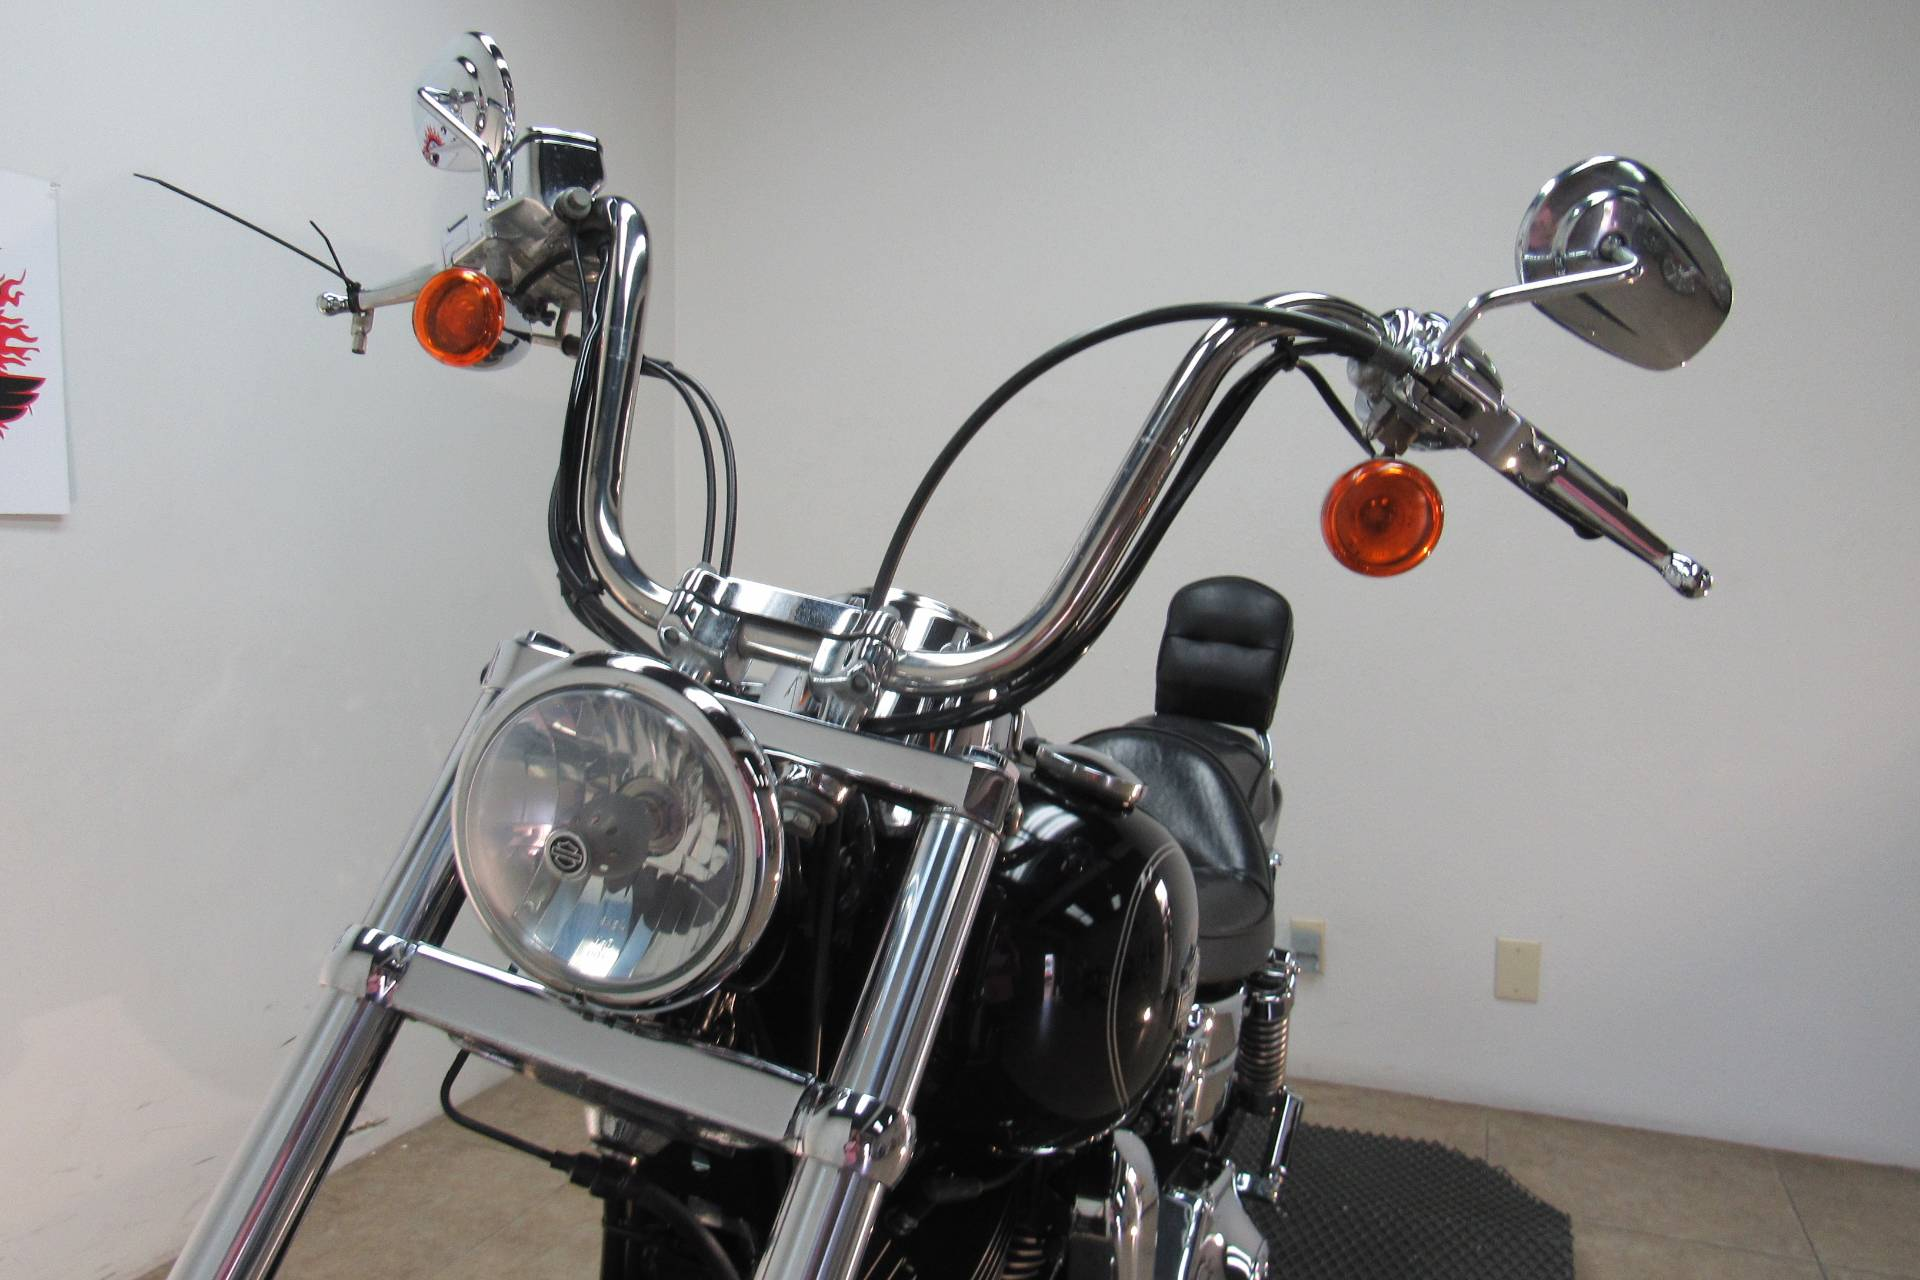 2005 Harley-Davidson FXDWG/FXDWGI Dyna Wide Glide® in Temecula, California - Photo 24